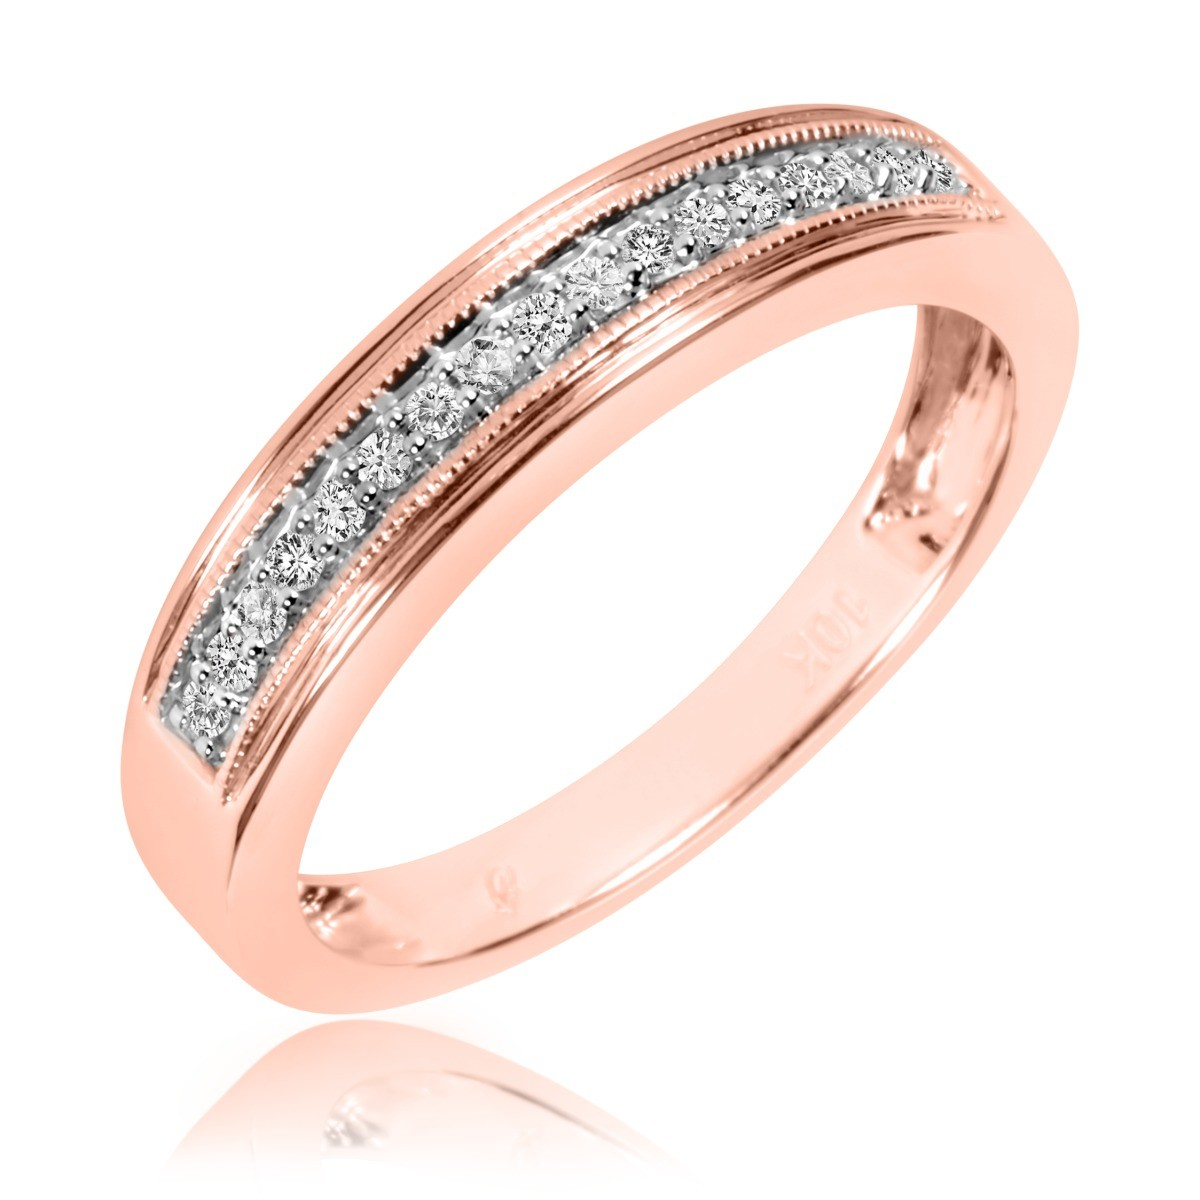 1/6 Carat T.W. Diamond Men's Wedding Band 10K Rose Gold